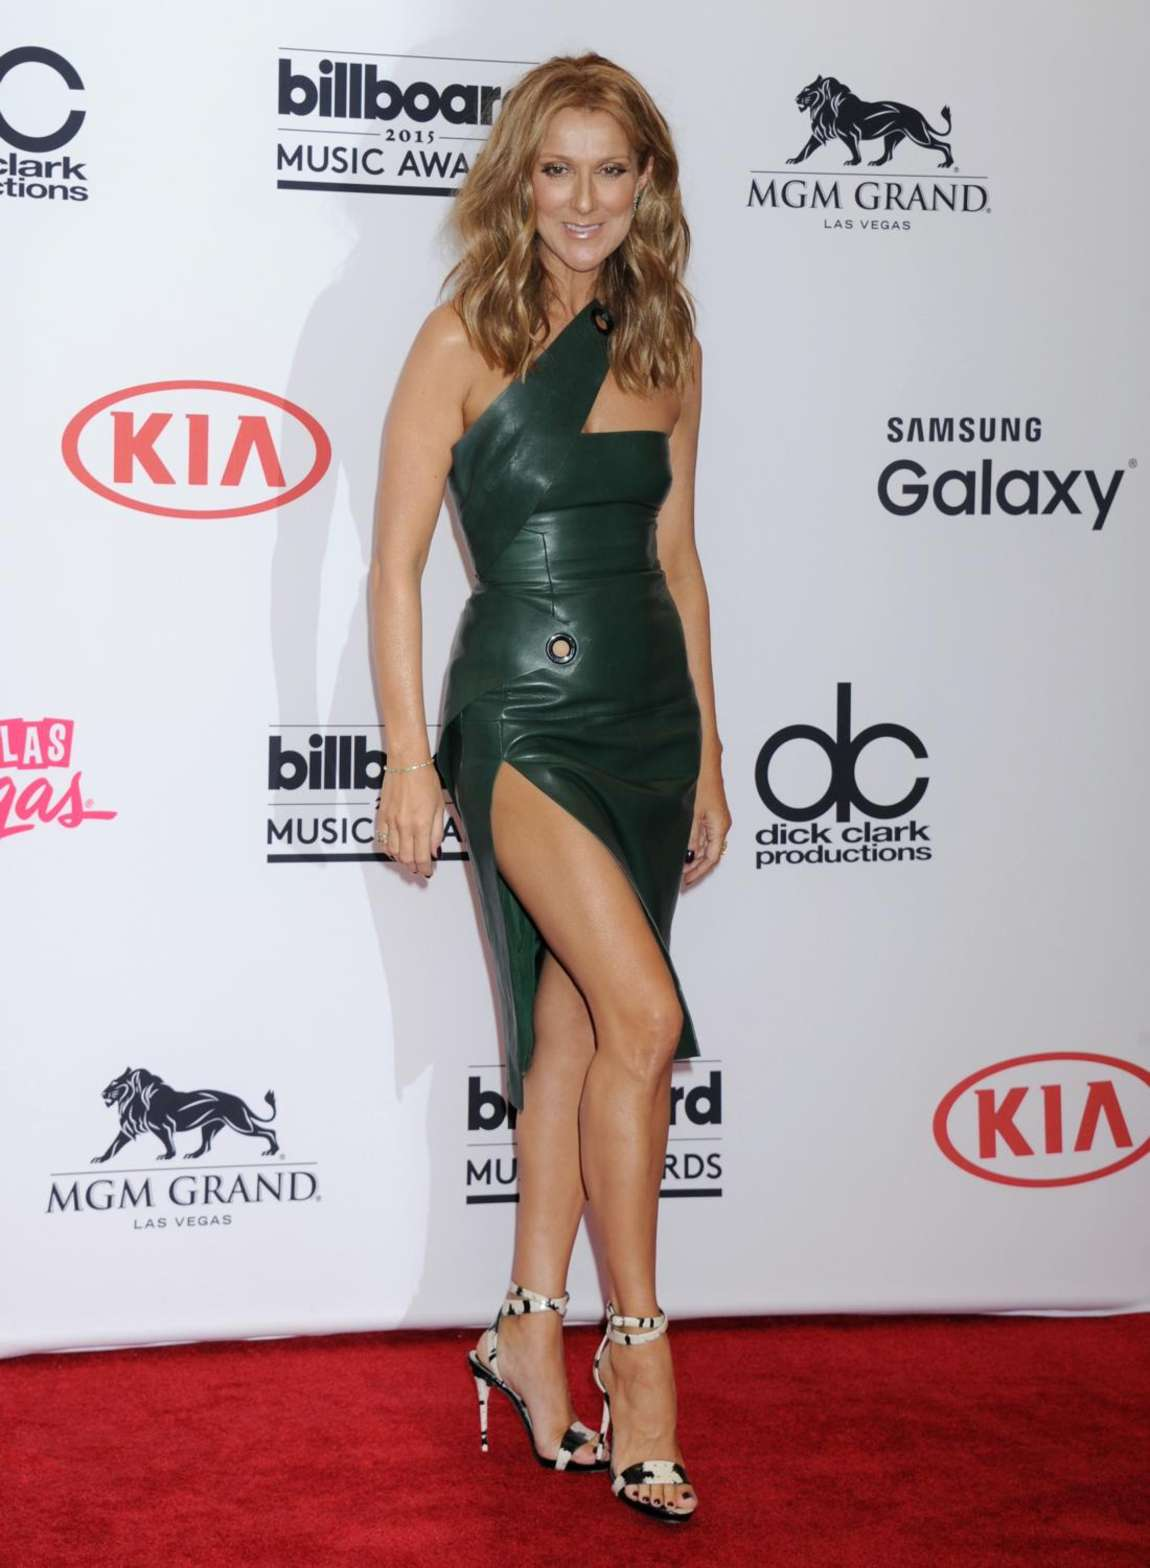 Celine Dion Billboard Music Awards in Las Vegas